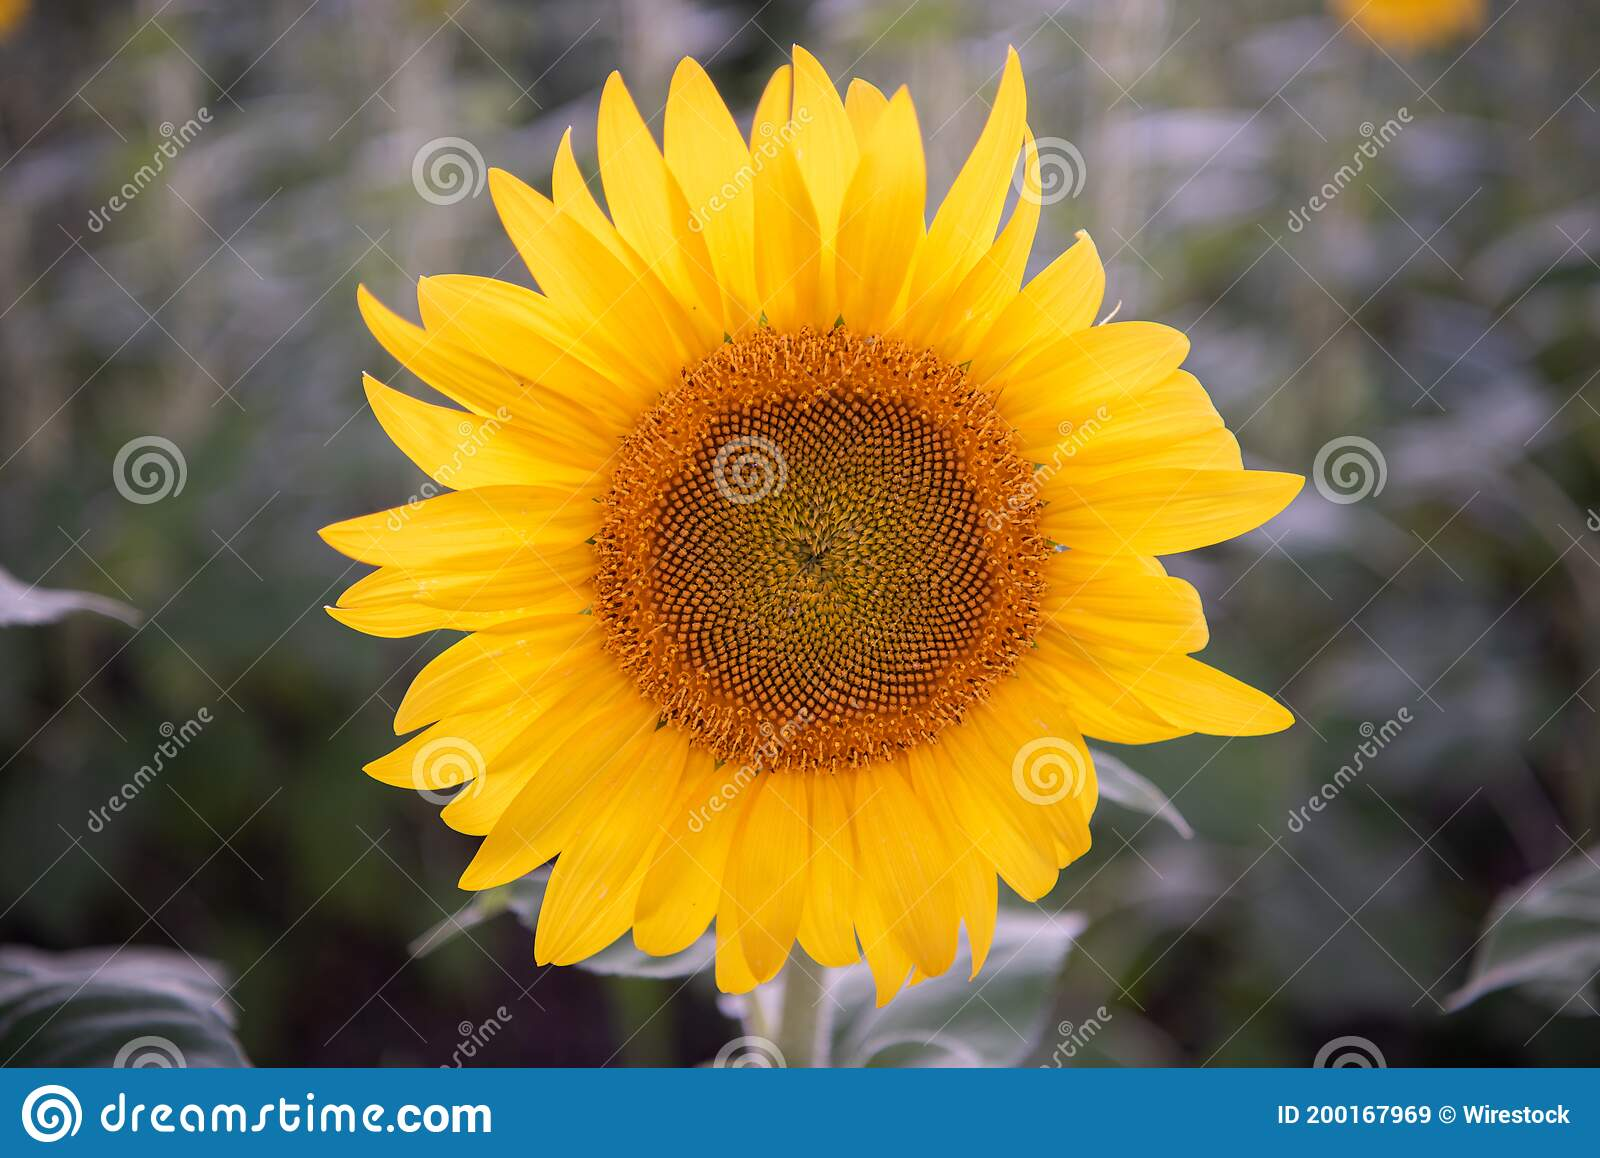 948 Sunflower Silhouette Photos Free Royalty Free Stock Photos From Dreamstime You have come to the right place! dreamstime com